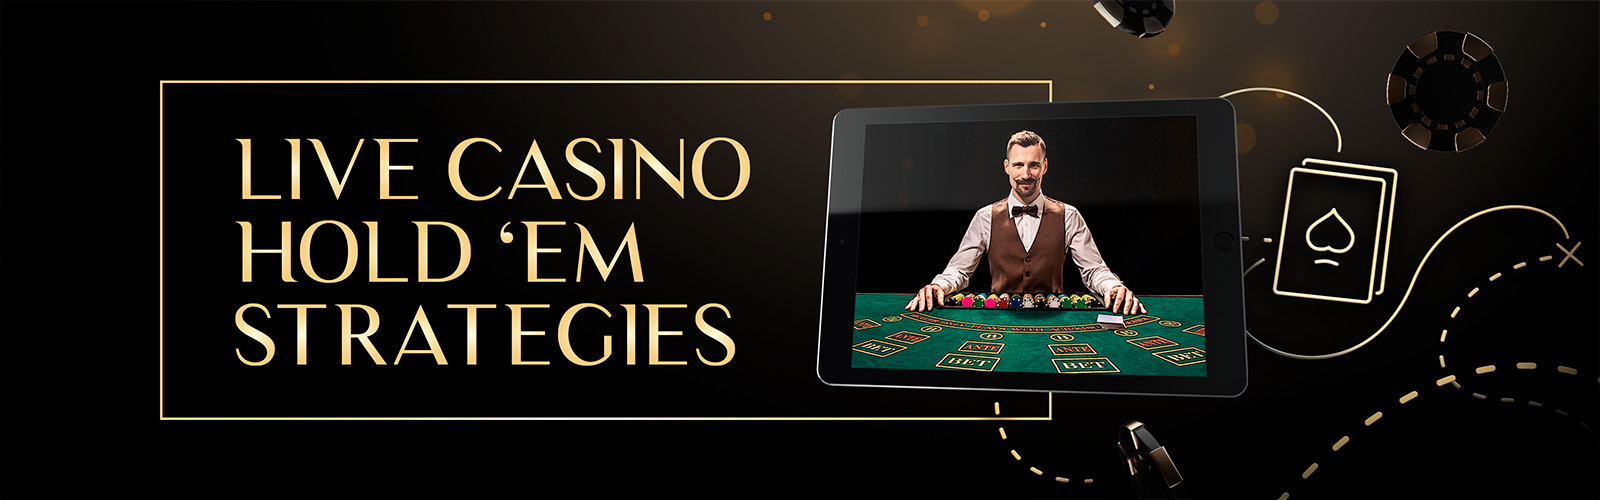 Live Casino Holdem Strategies